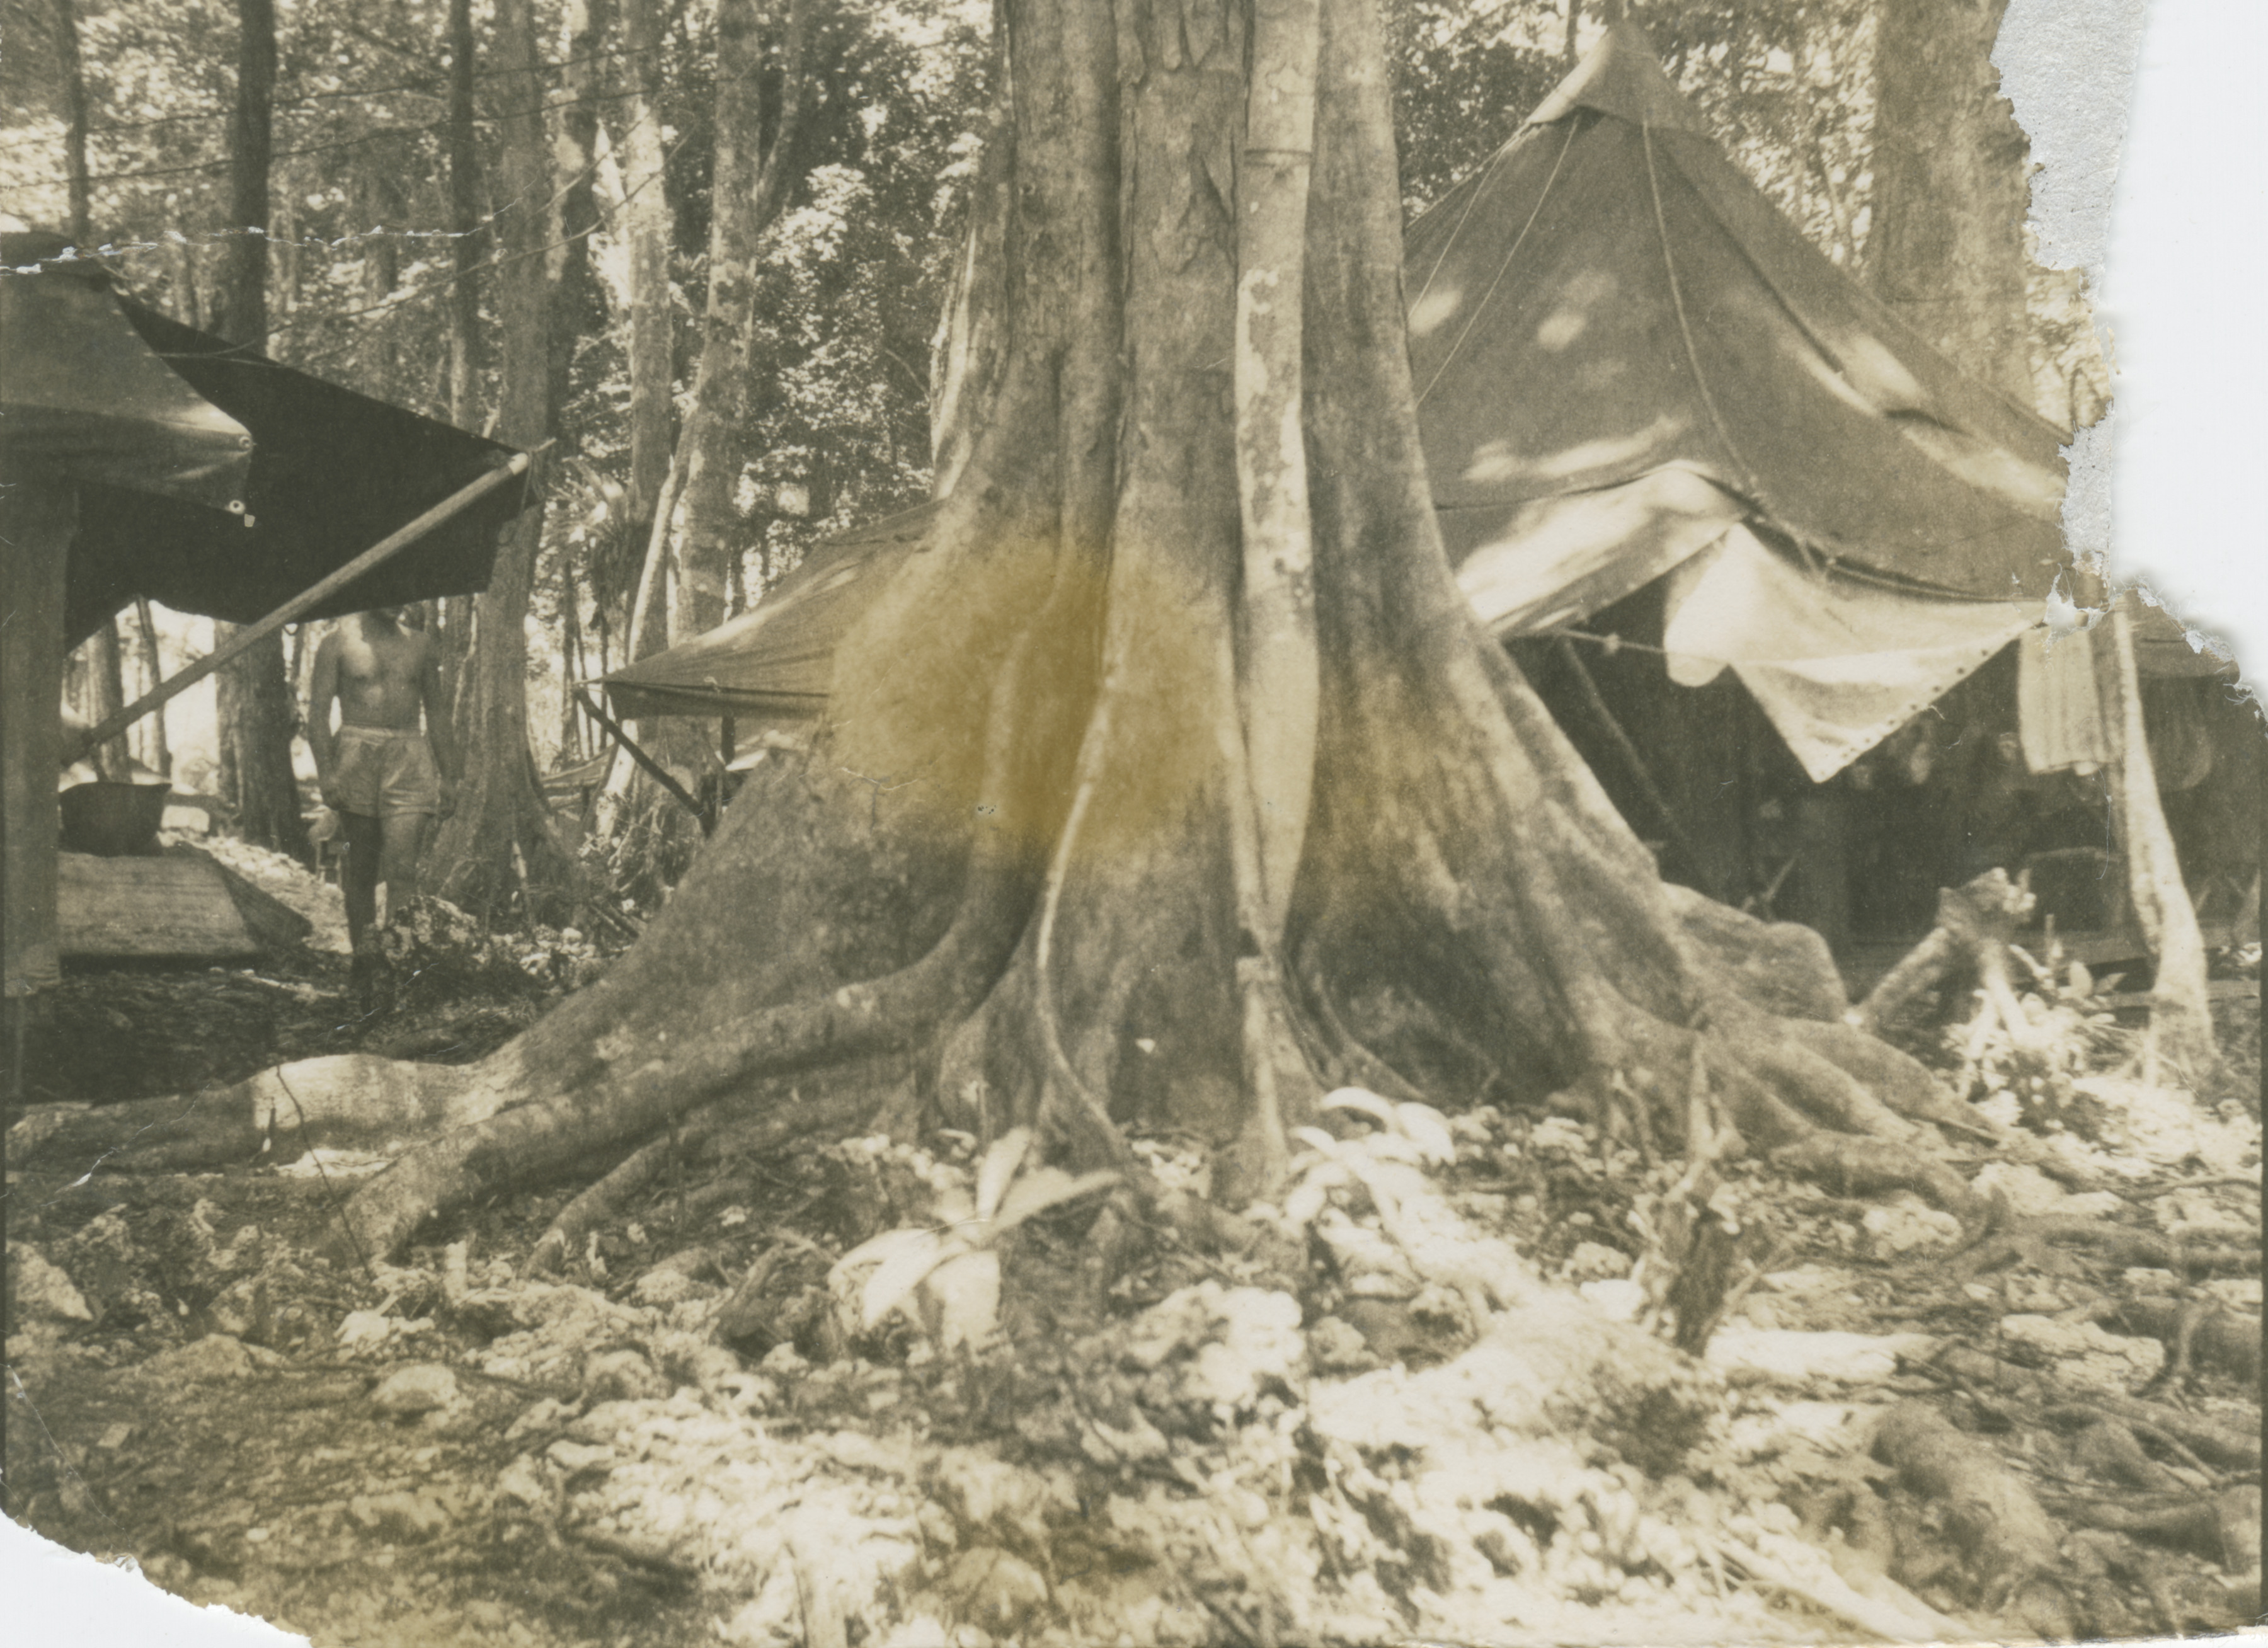 Roots of large Banyan tree near US military tents on Sterling Island in 1944 | The Digital Collections of the National WWII Museum  Oral Histories & Roots of large Banyan tree near US military tents on Sterling ...